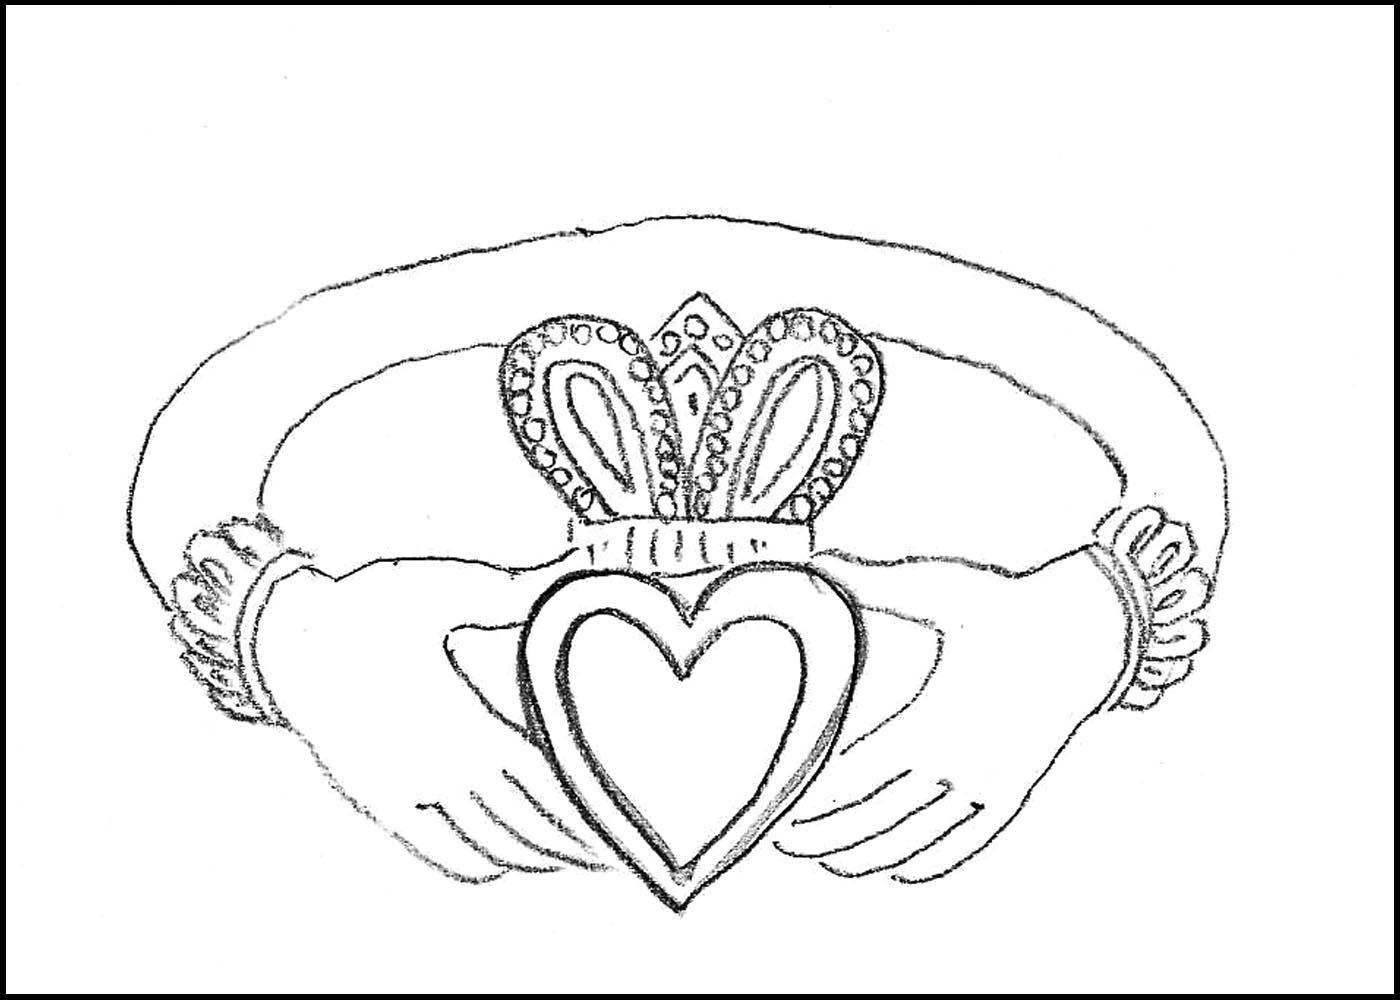 Coloring pages wedding theme - Print Out Wedding Coloring Pages For Kids And Adults Have Fun With It Find Many Different Wedding Themes To Color Detailed And Free